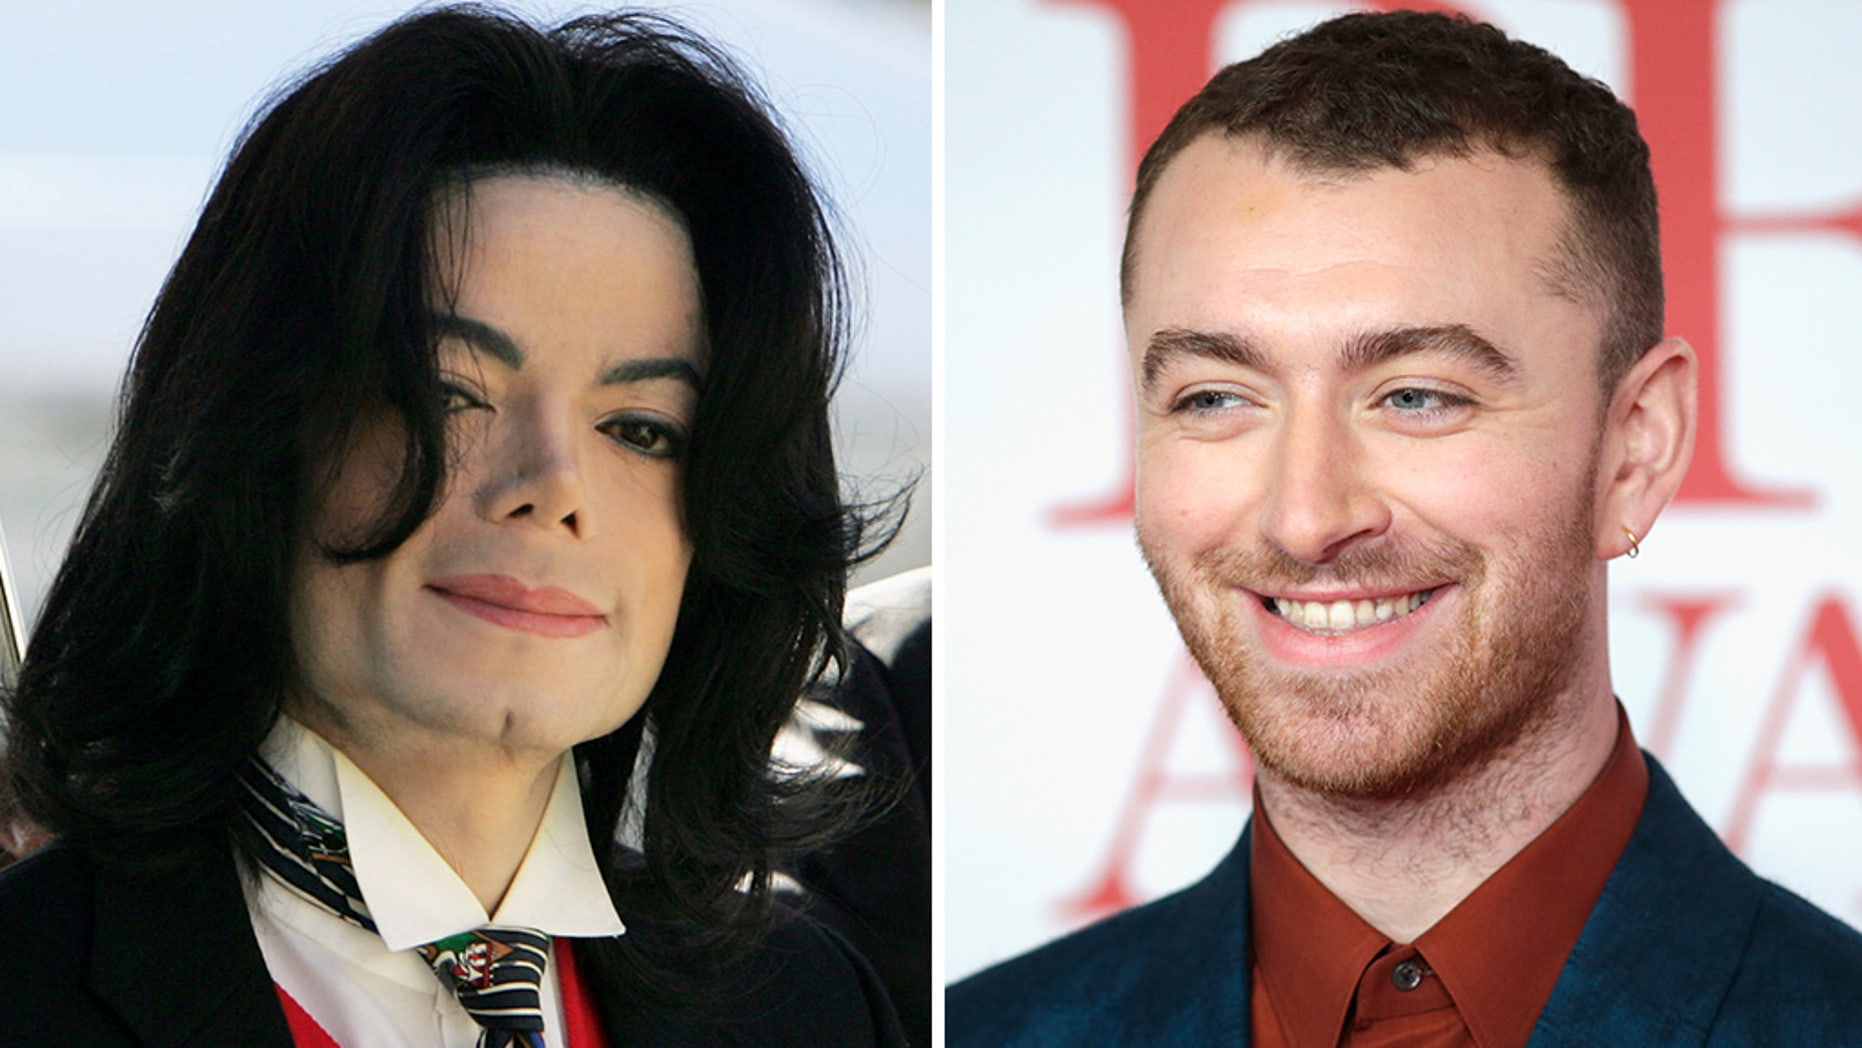 Singer Sam Smith was slammed for saying he doesn't like the King of Pop.